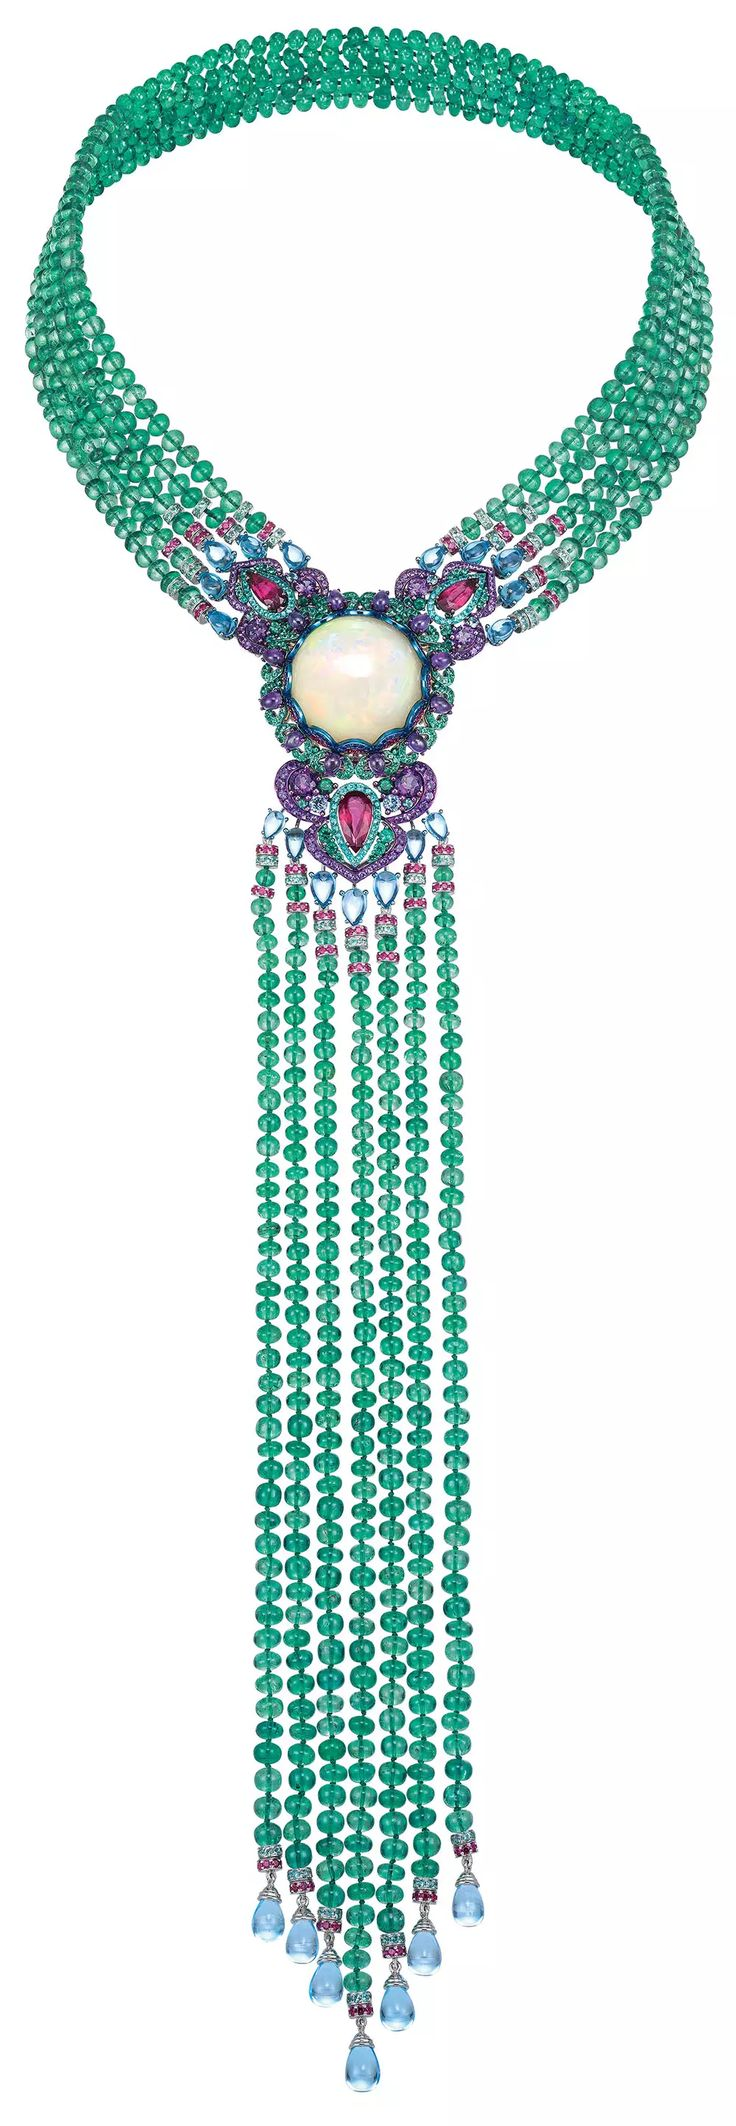 Chopard Necklace in 18k white gold and titanium with a 29.8ct white opal, 413ct t.w. emerald beads, 29ct t.w. topaz, 5.9ct t.w. amethyst, 4.4ct t.w. rubies, 4ct t.w. Paraiba tourmaline, 3.9ct t.w. rubellites, and emeralds and sapphires